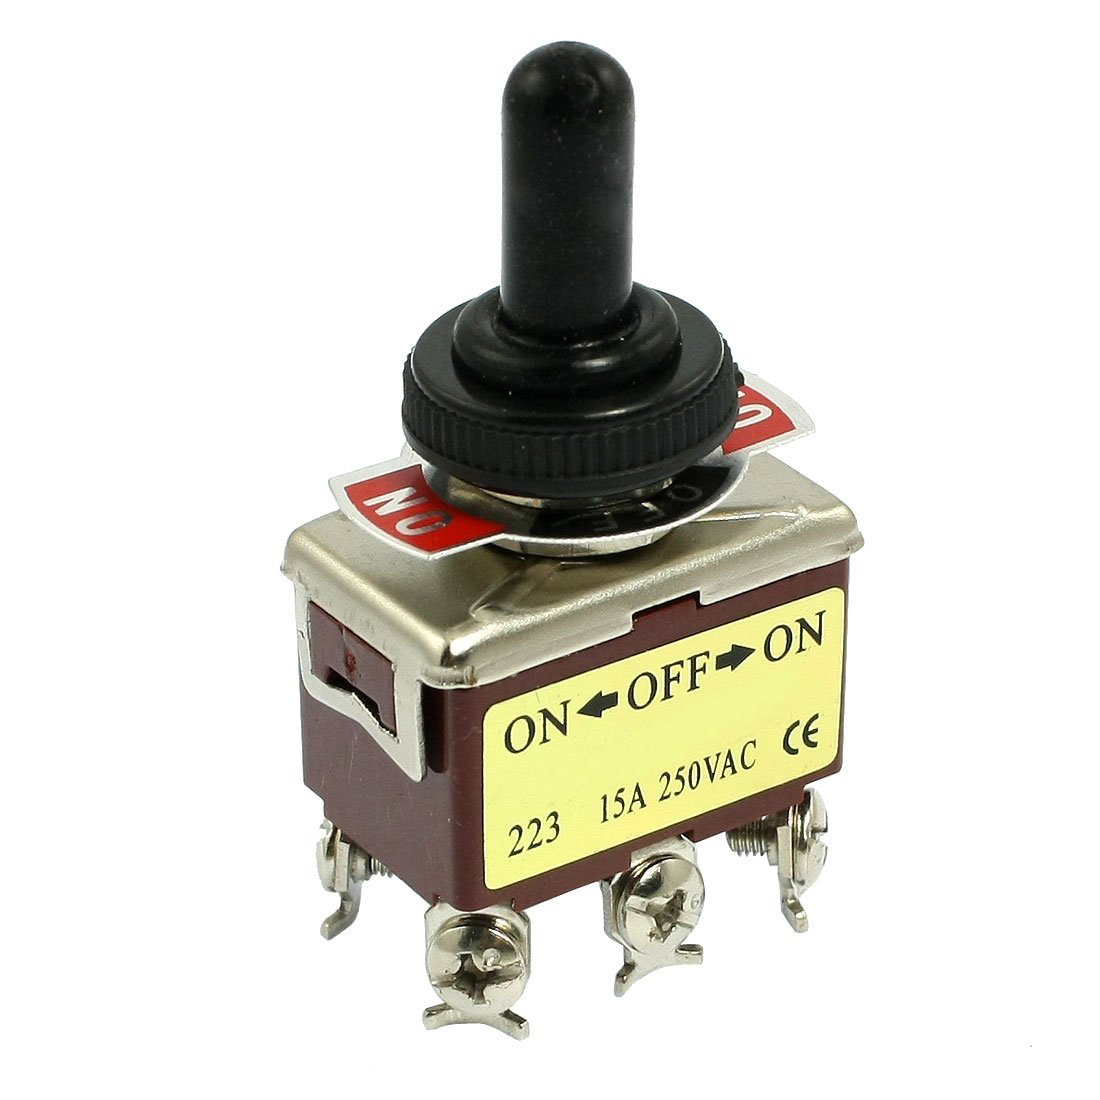 HWEXPRESS AC 250V 15A 6 Pin DPDT On/Off/On 3 Position Mini Toggle Switch kn3d 103 ac 12v 25a 3 pins on off on 3 ways 1p2t spdt toggle switch replacement